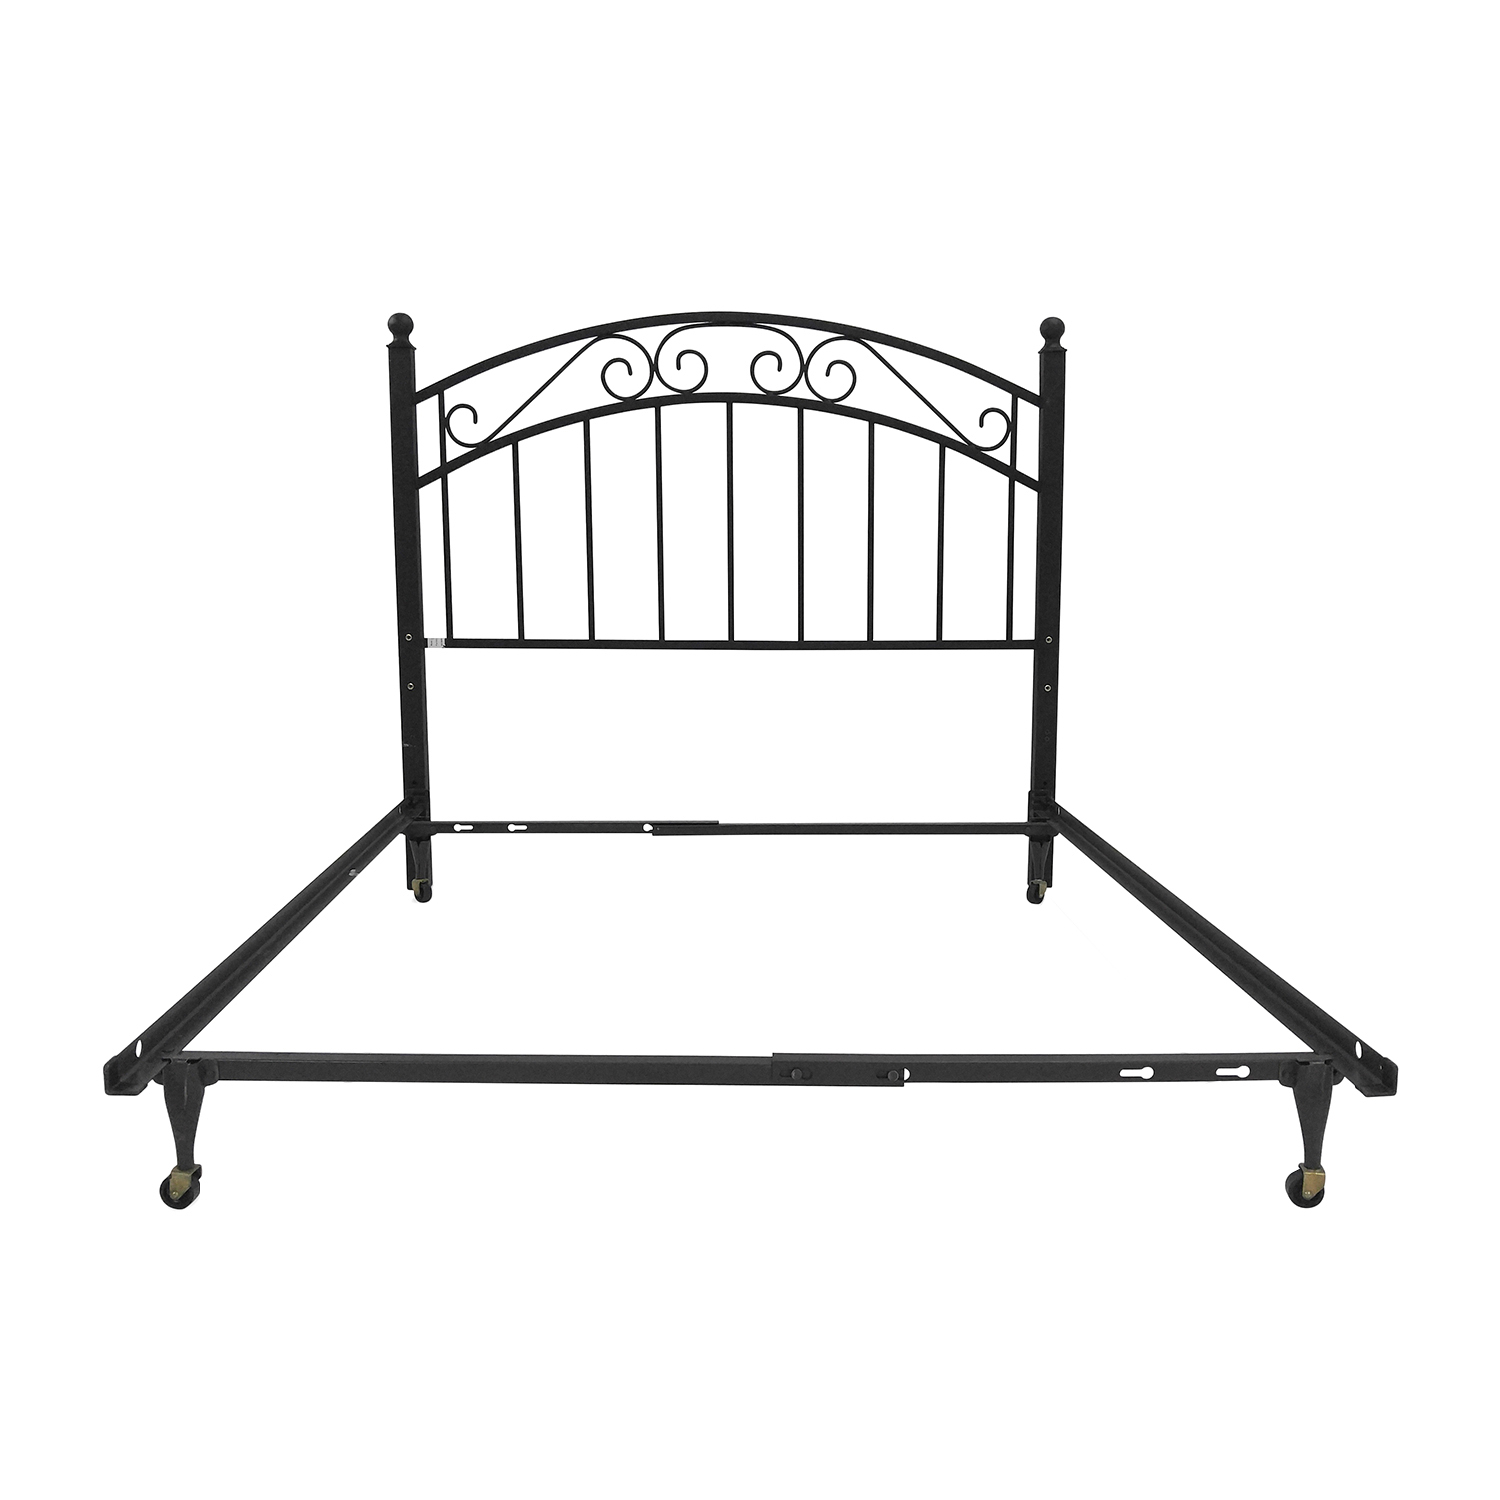 Crate and Barrel Full Iron Bed Frame and Headboard sale